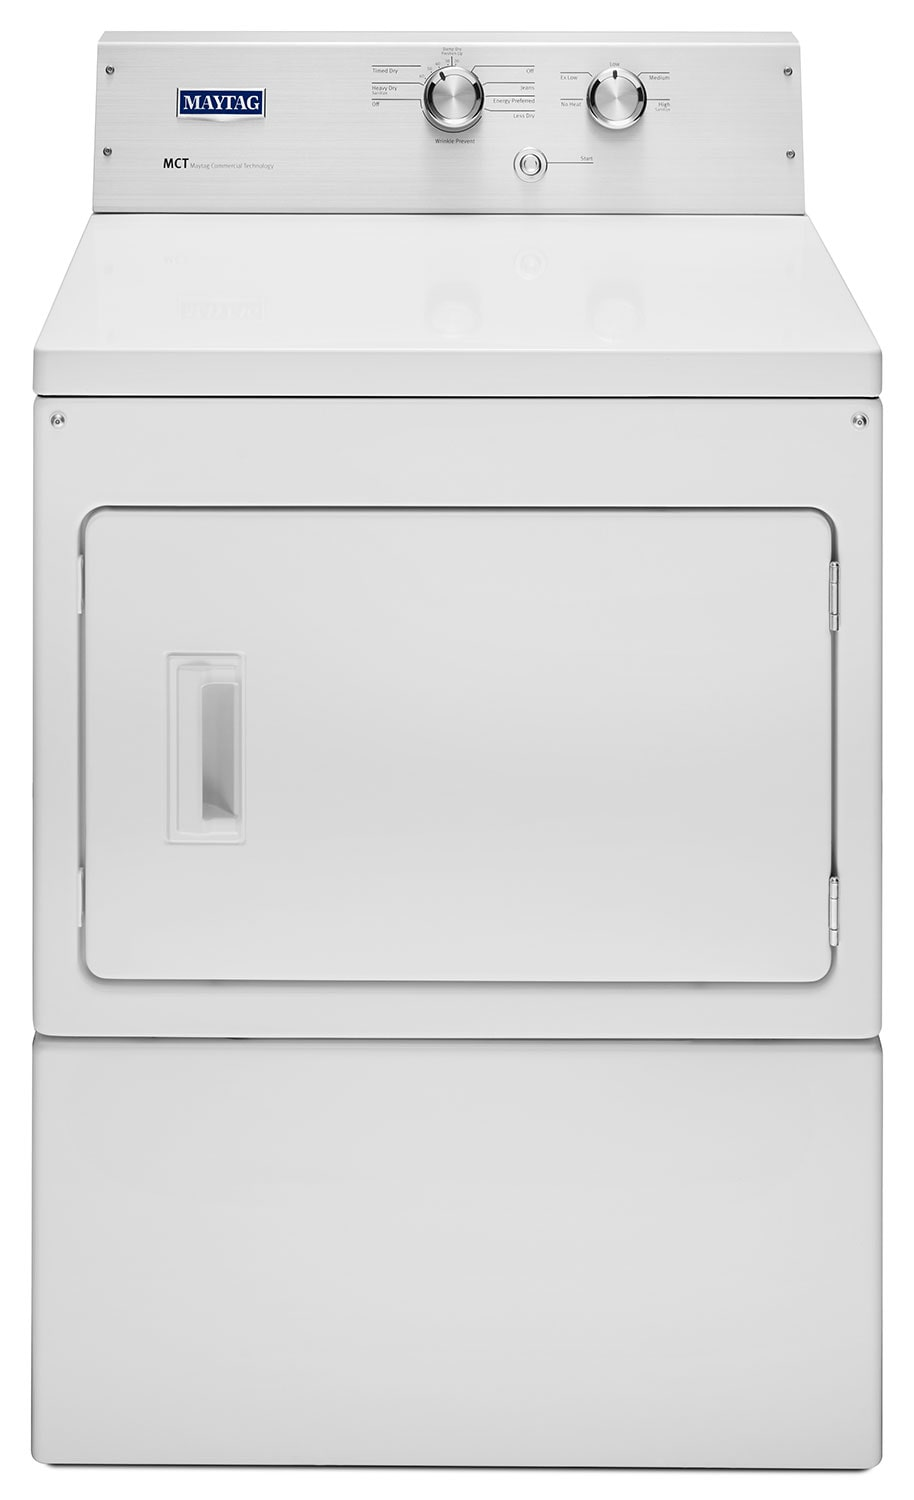 Washers and Dryers - Maytag 7.4 Cu. Ft. Electric Dryer – YMEDP475EW